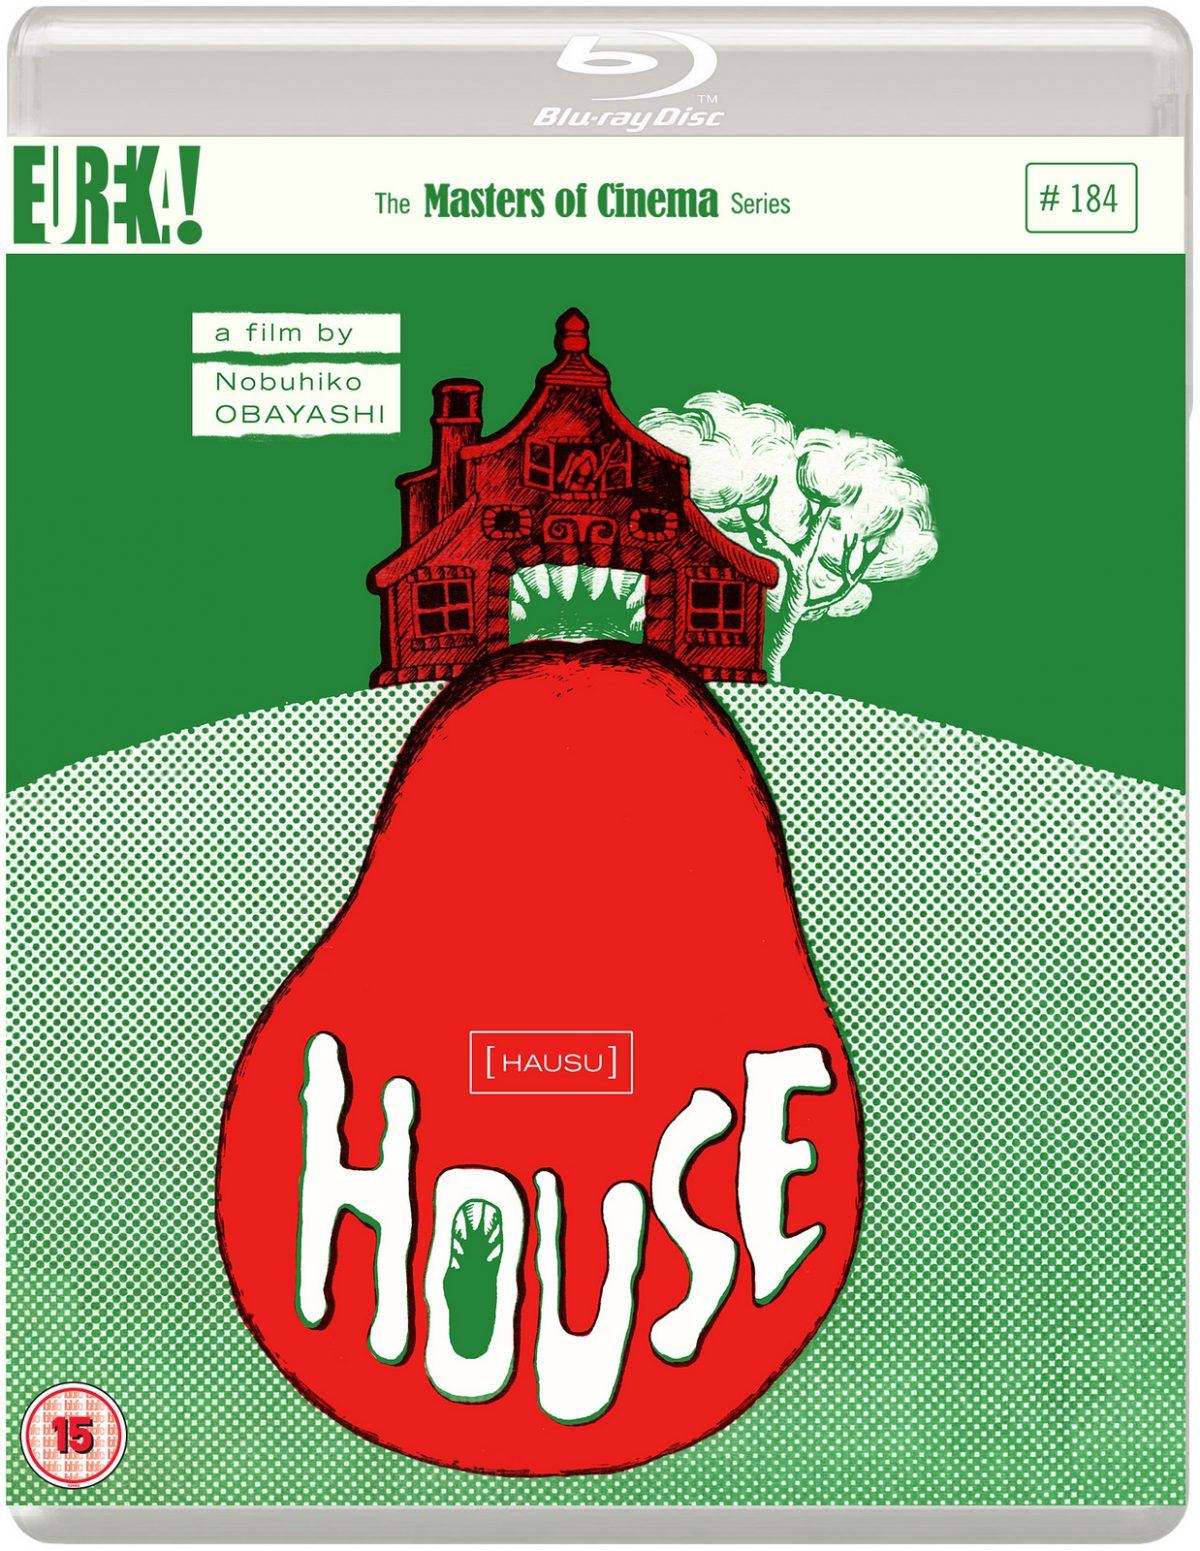 Blazing Minds have got together with Eureka Entertainment to give you the chance to win a Blu-ray of their new release HOUSE, a self-aware, post-modern Japanese fairy tale from one of cinema's great surrealists, as part of the Masters of Cinema range on Blu-ray on 12 February 2018.